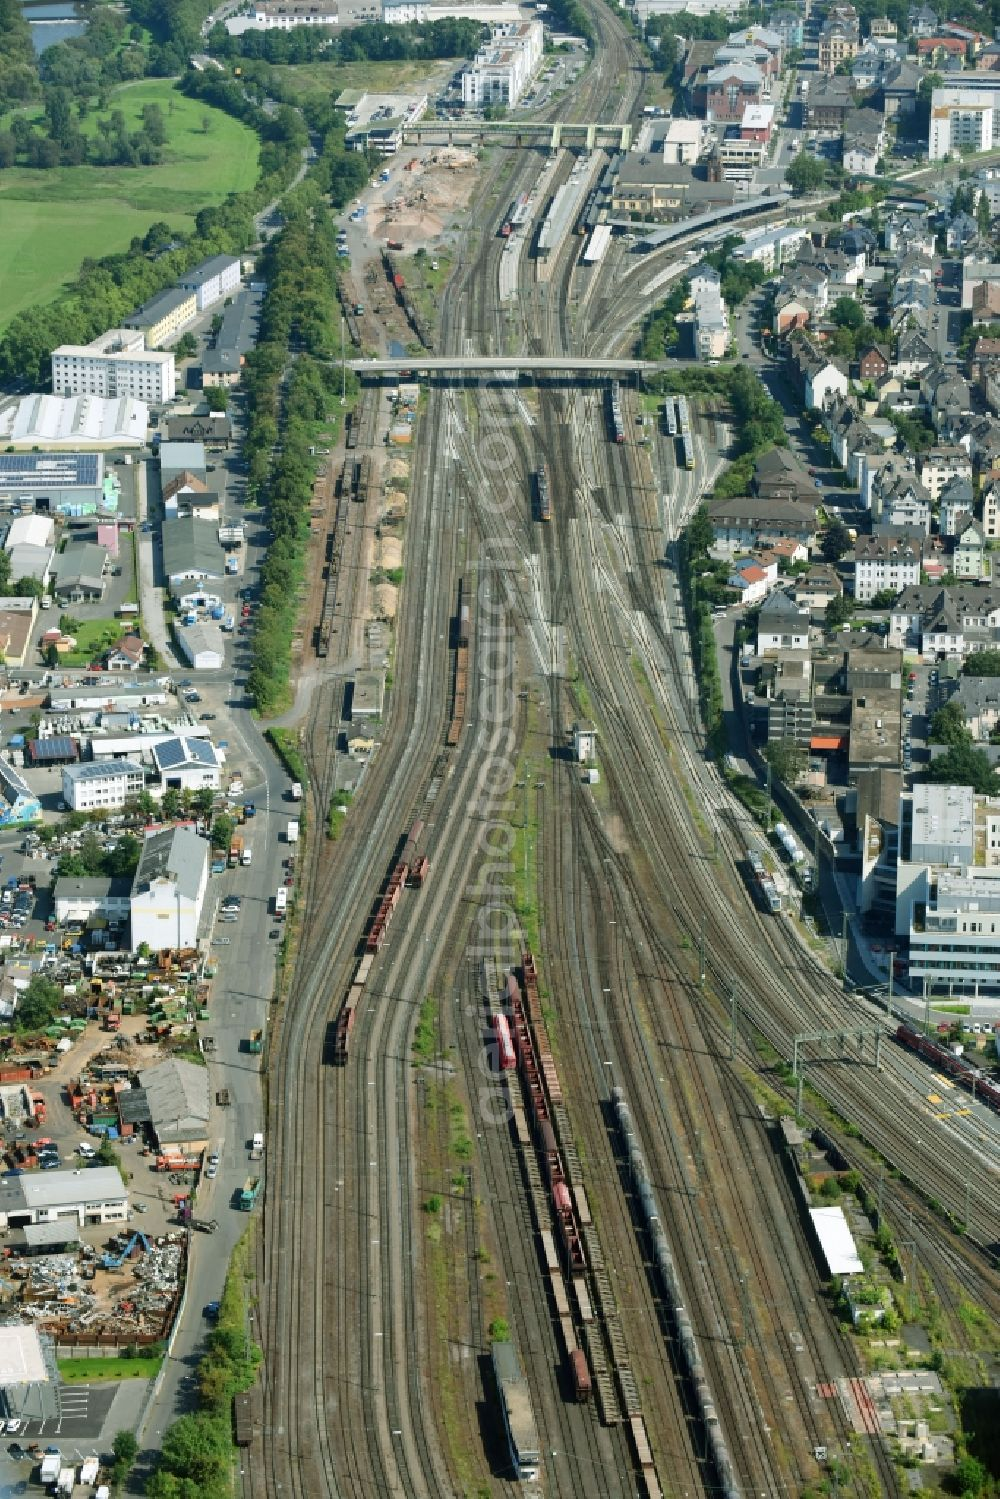 medium resolution of gie en from above railway track and overhead wiring harness in the route network of the deutsche